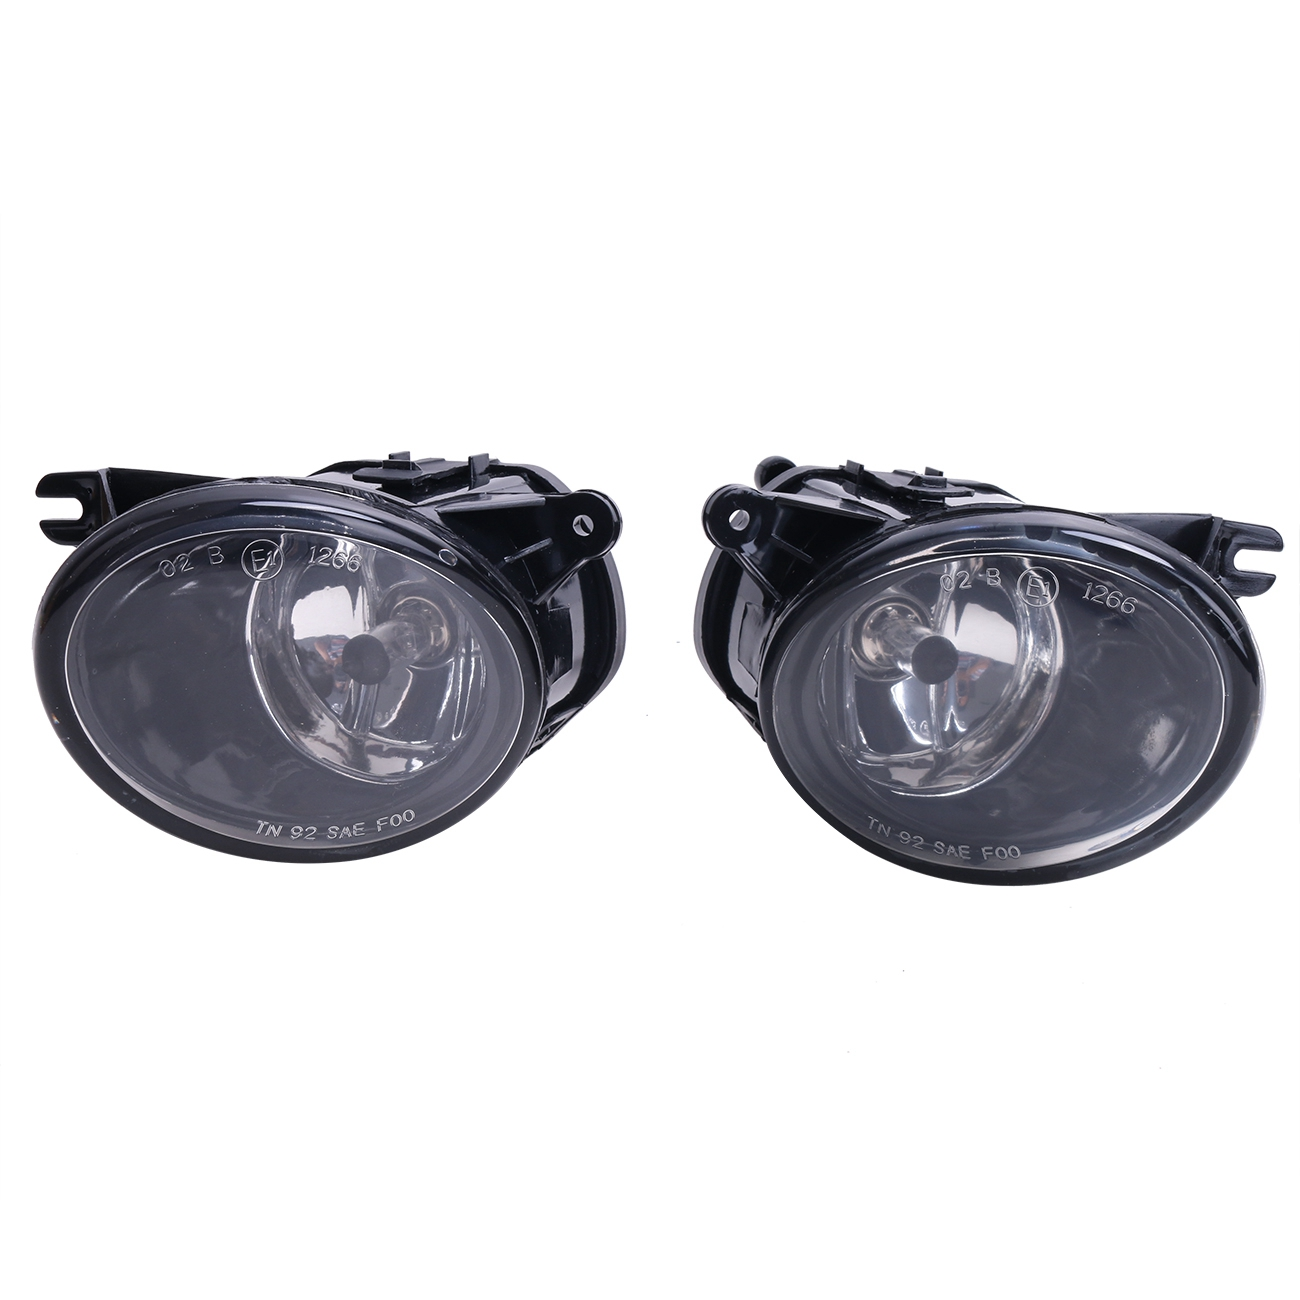 1 Pair Front Driving font b Lamps b font Fog Lights For Audi A6 C5 S6